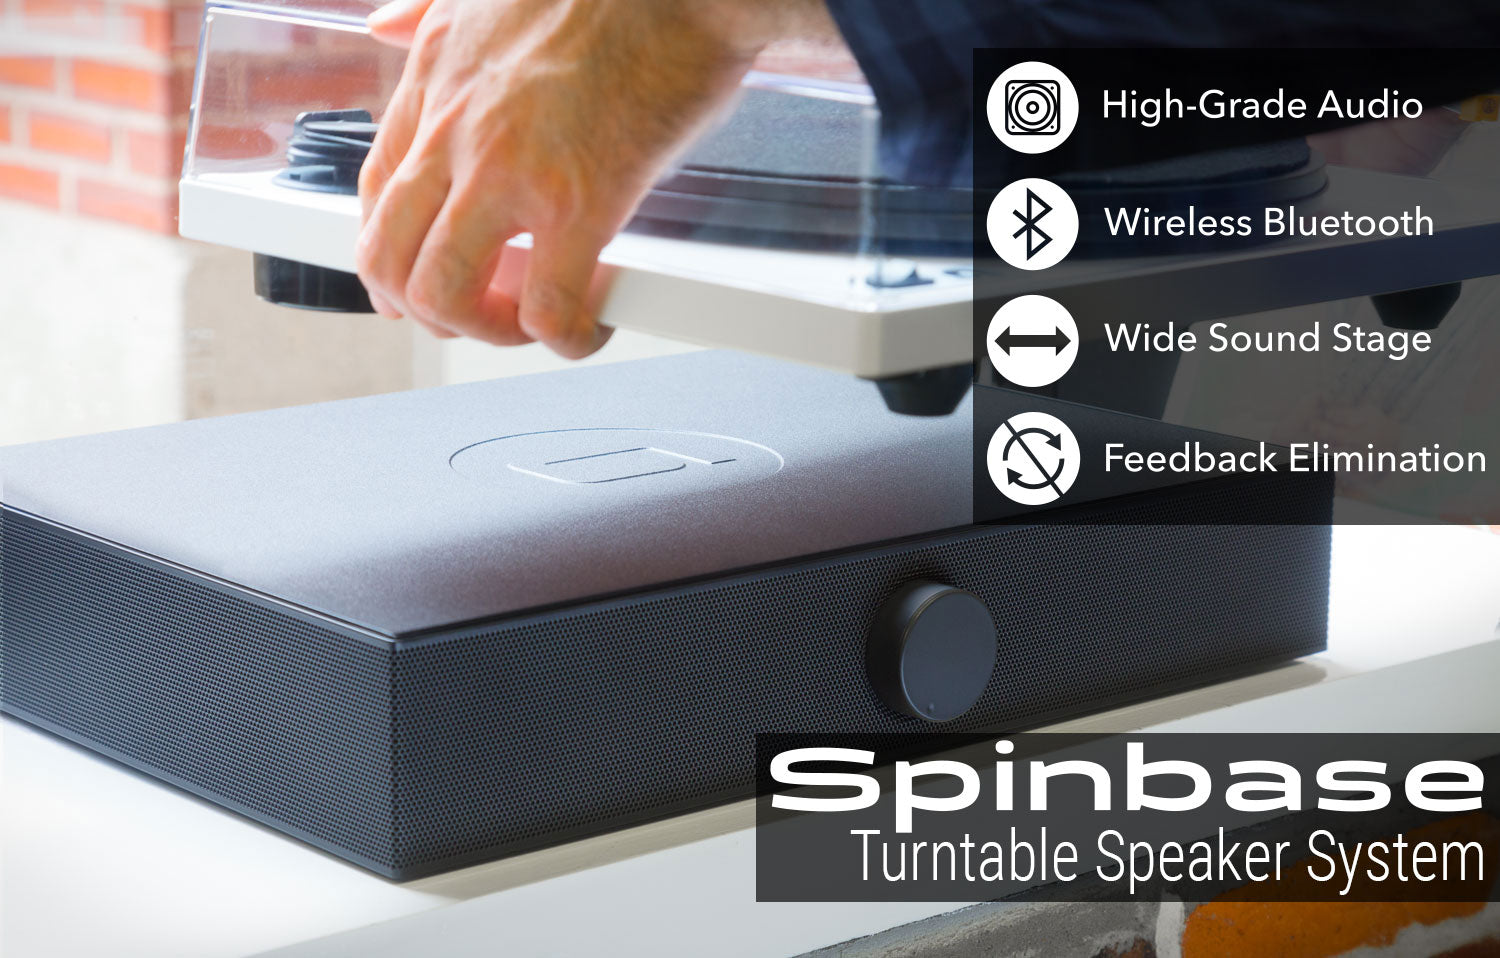 Spinbase Kickstarter Ends Nov 30!